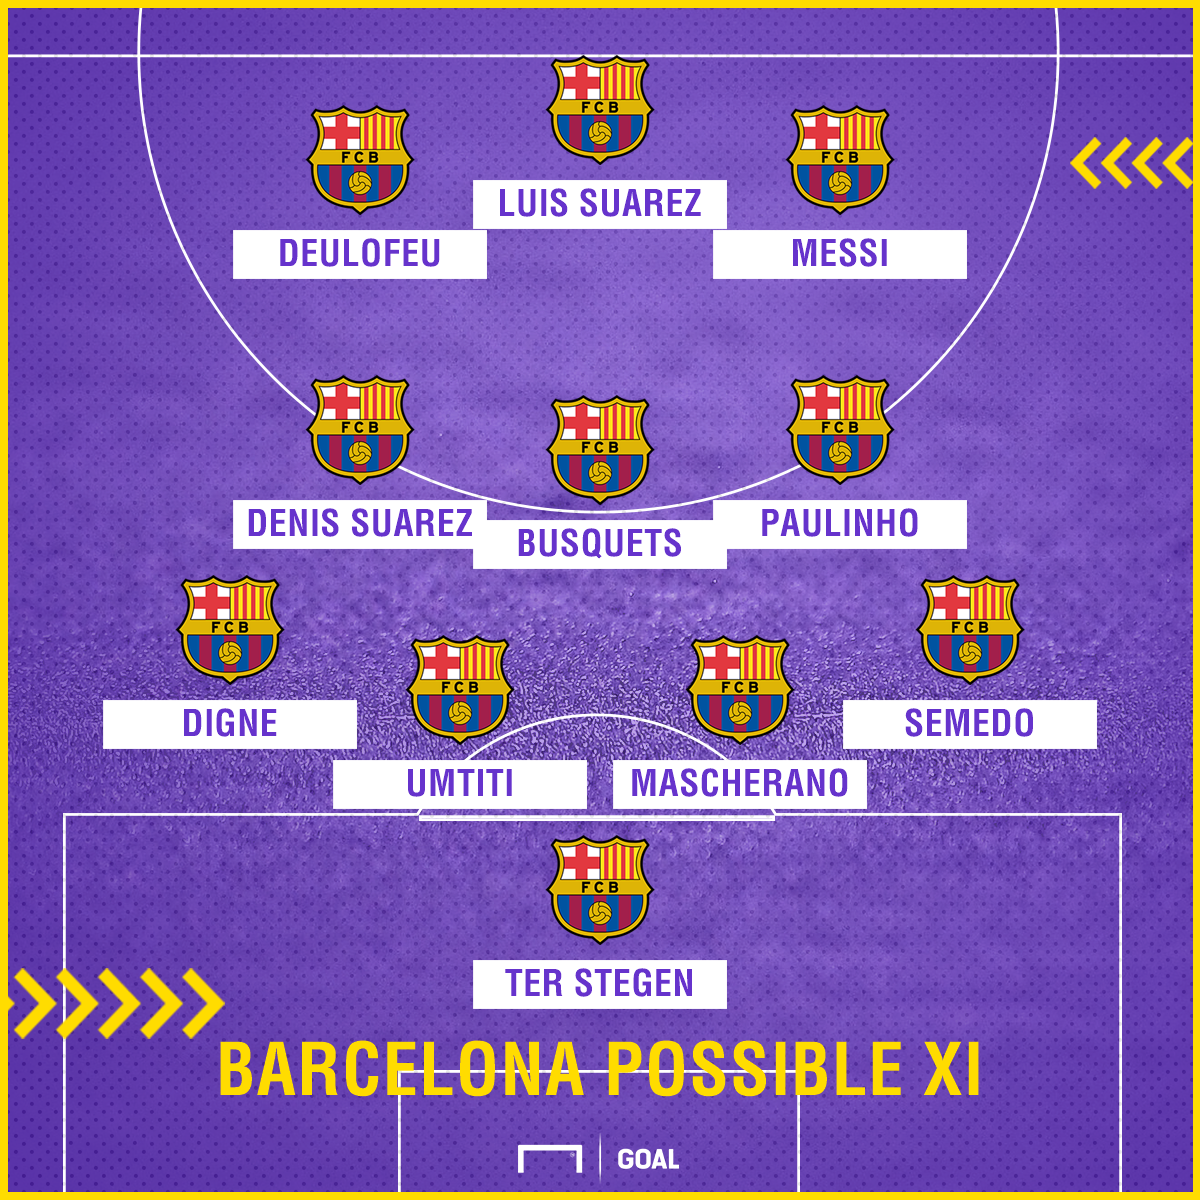 Barcelona possible XI